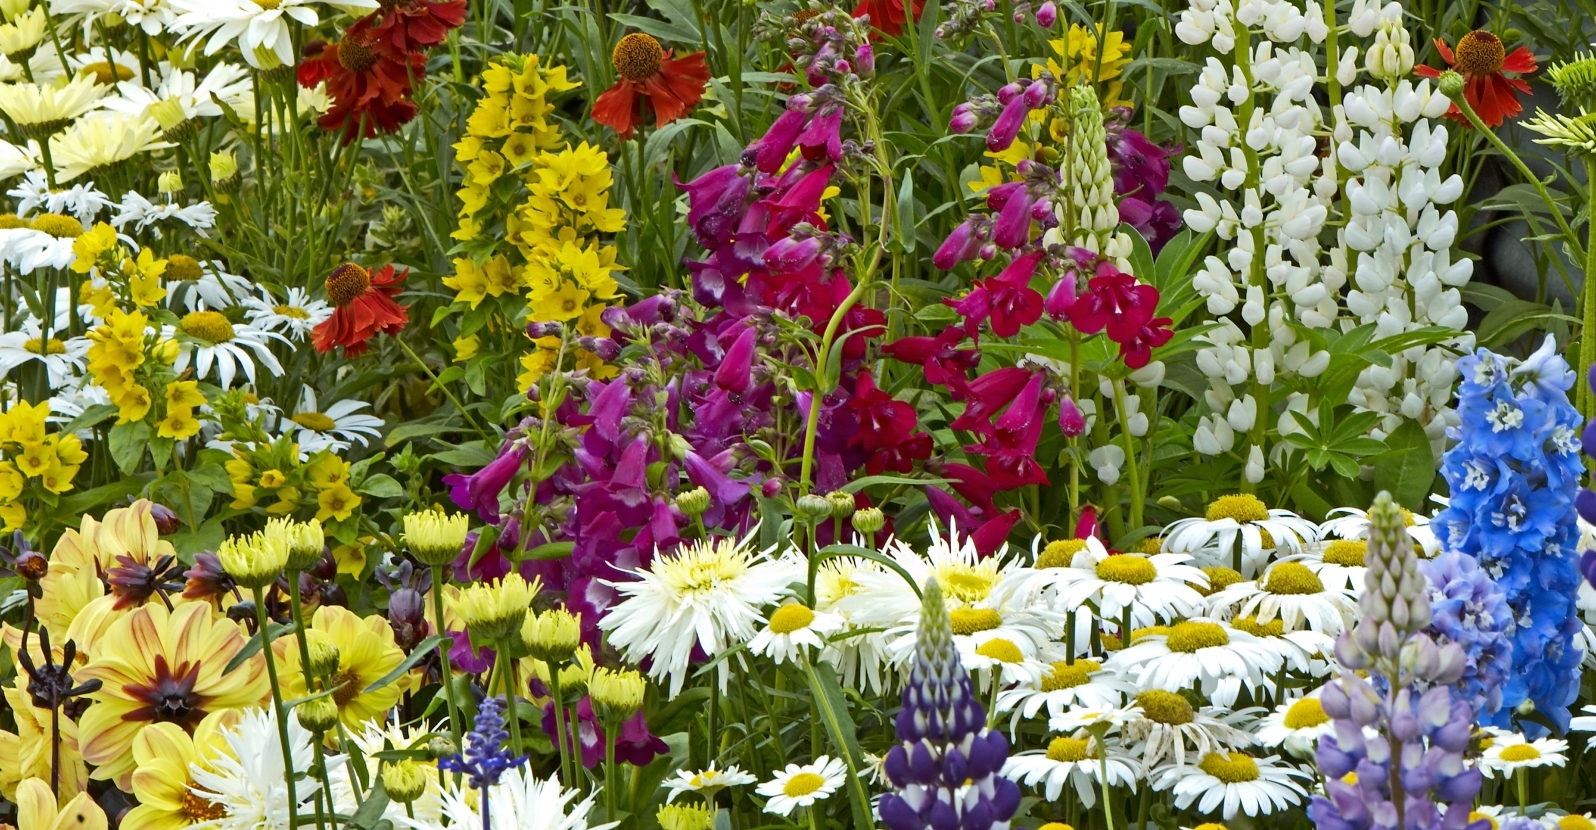 Know Your Plants Annual Vs Perennial My Garden Life